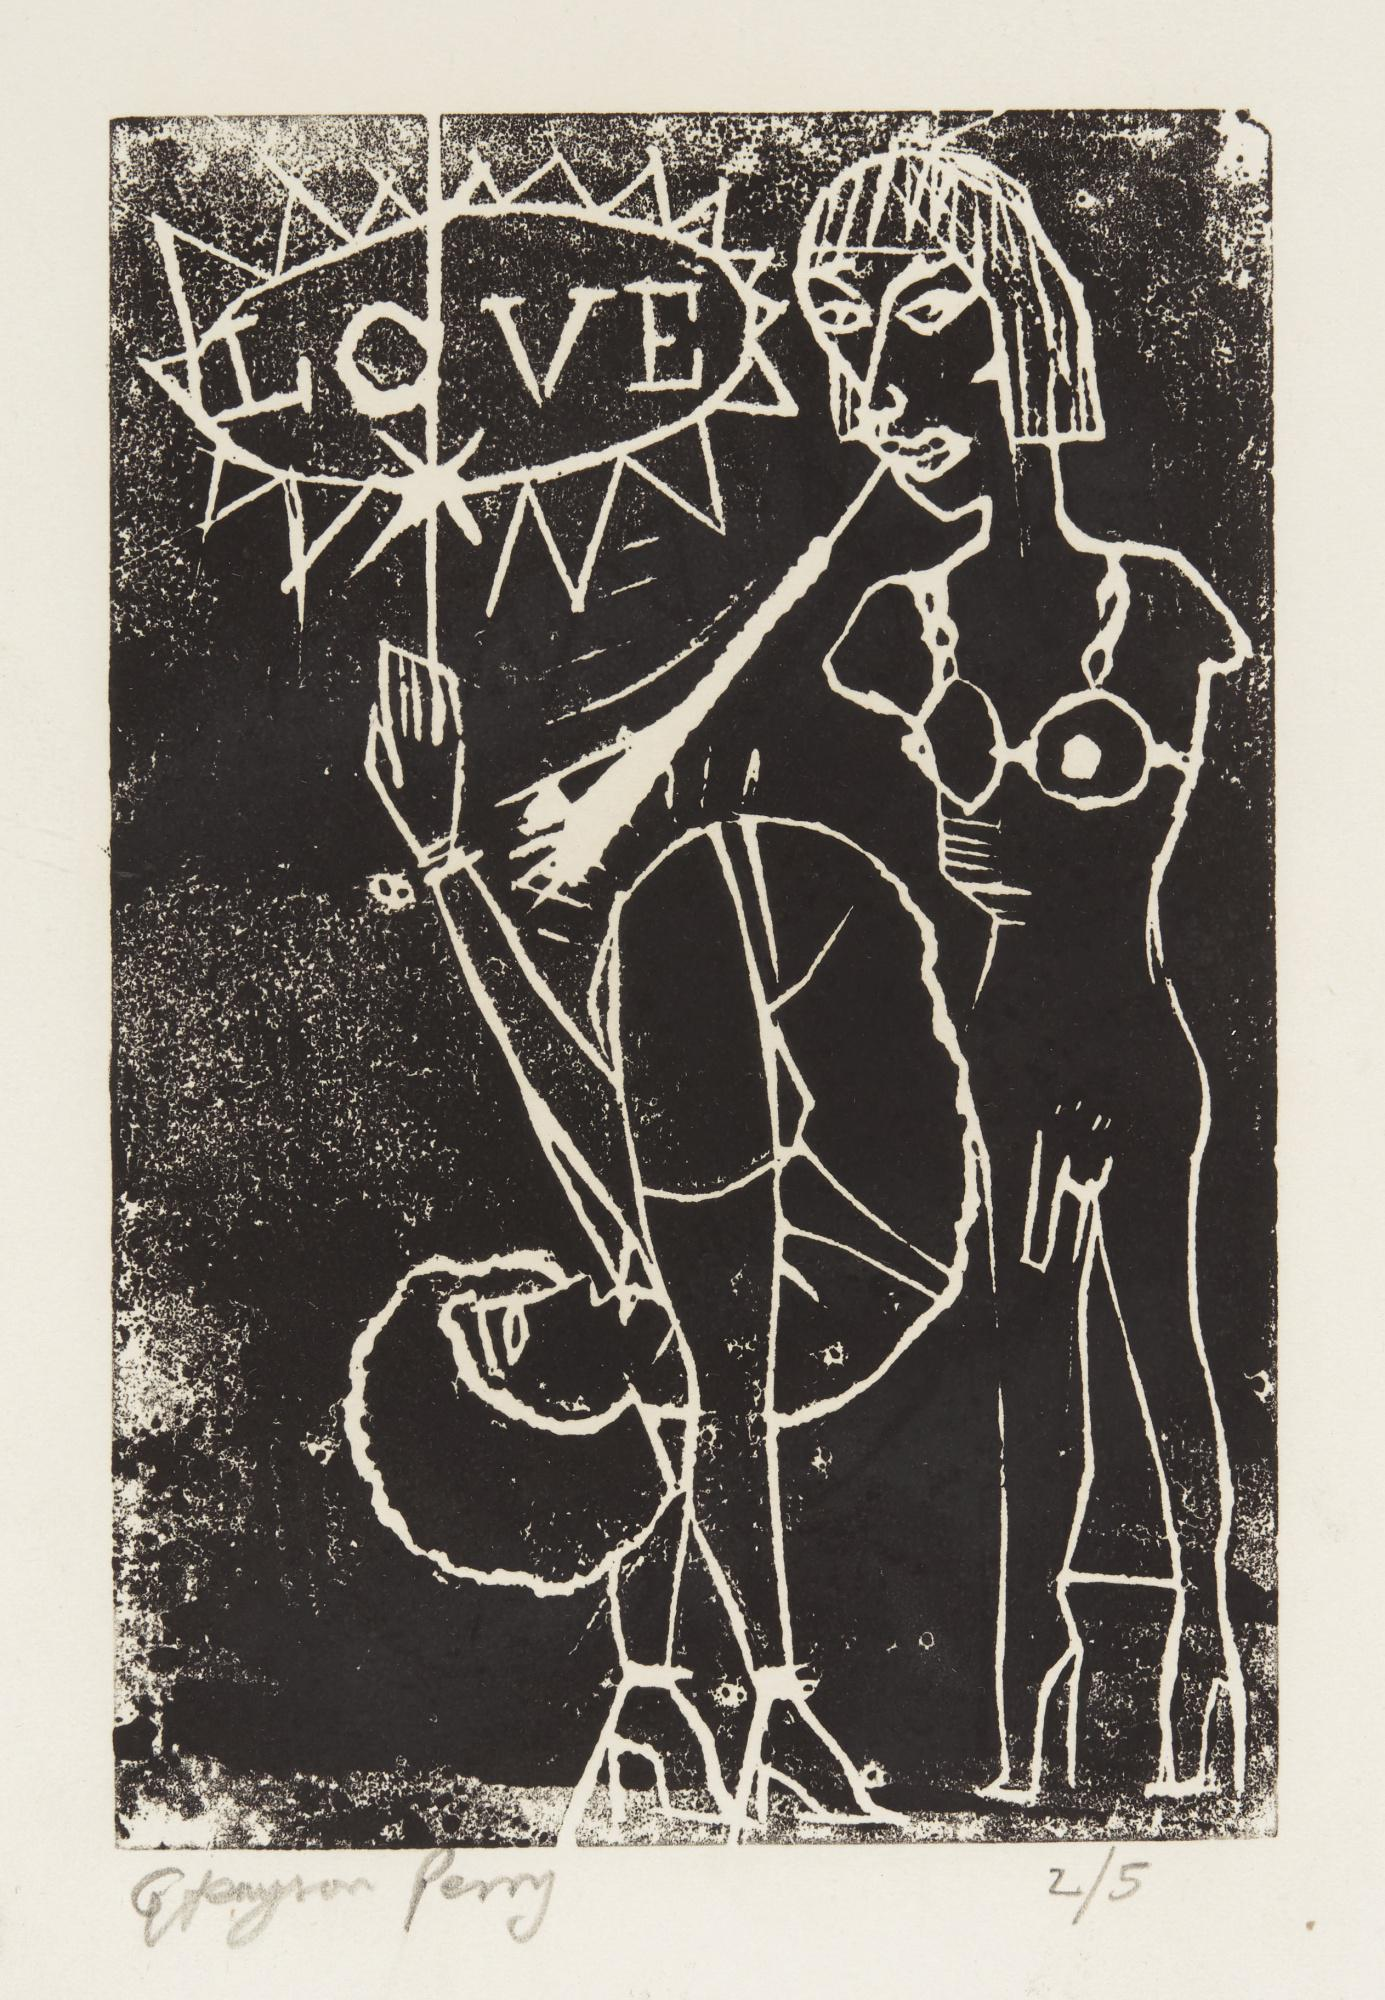 GRAYSON PERRY, R.A. | UNTITLED (LOVE)